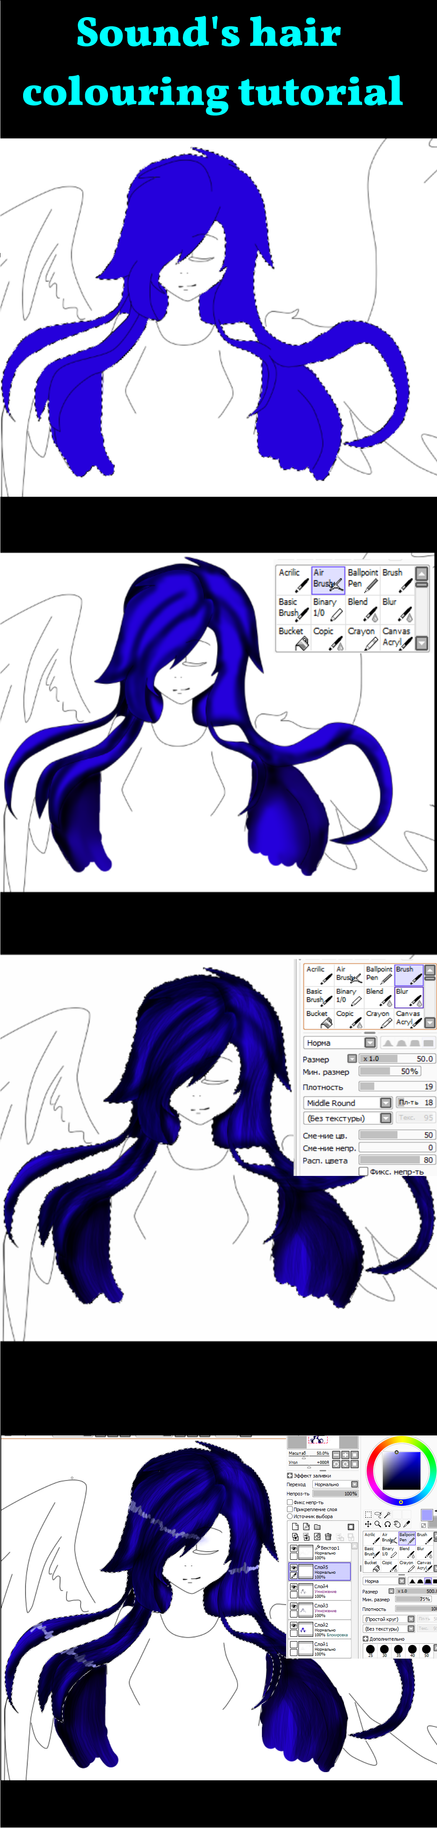 Sound's hair colouring tutorial by The---Sound